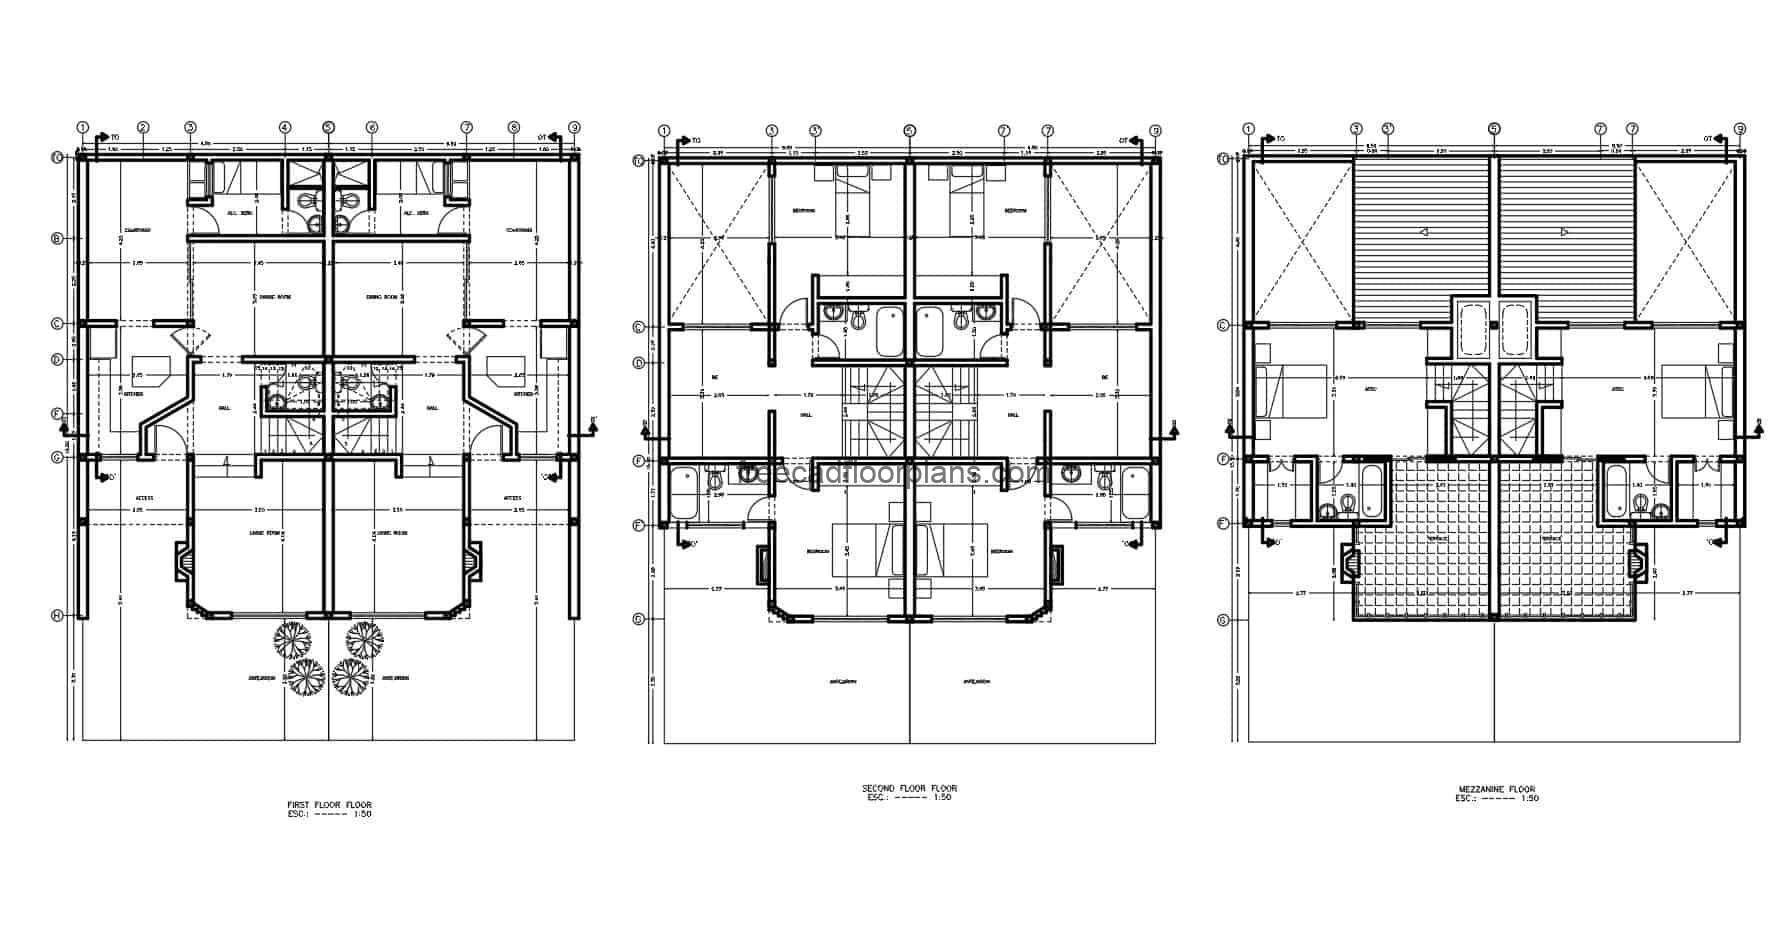 2D plans of two-level residence with mezzanine and six rooms in total, the upper rooms have access to front terraces, the house has sloping ceilings and works with duplex style. Each side of the house has three bedrooms ,two bathrooms, living room, dining room, garden area. Cad DWG plans for free download, sized floor plan, elevations, sections, details, Autocad blocks.